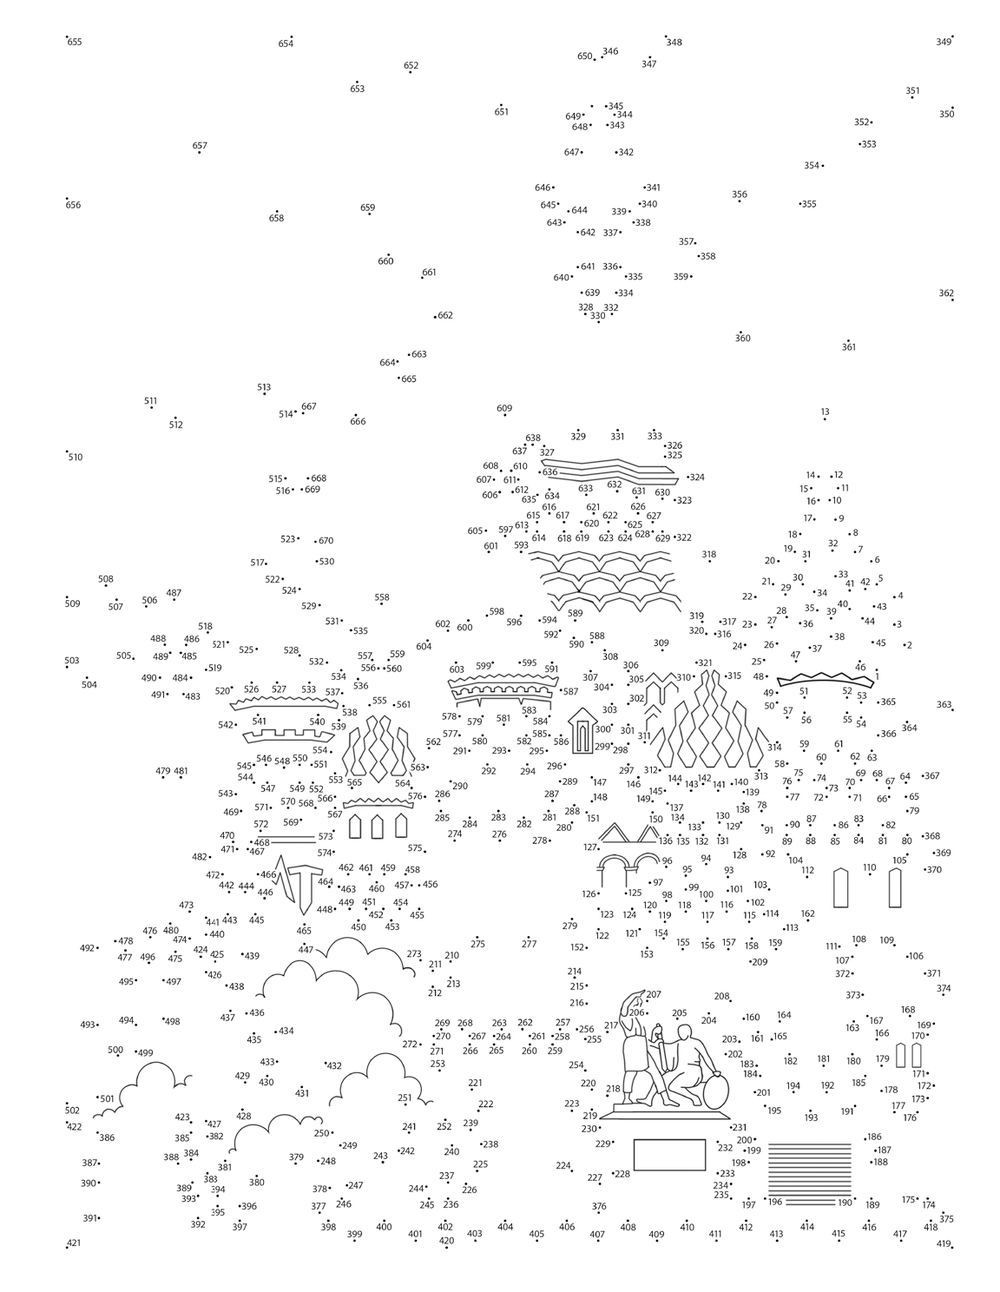 dot to dot 1 1000 worksheets 1000 dot to dot printable that are punchy russell website worksheets dot 1 to 1000 dot